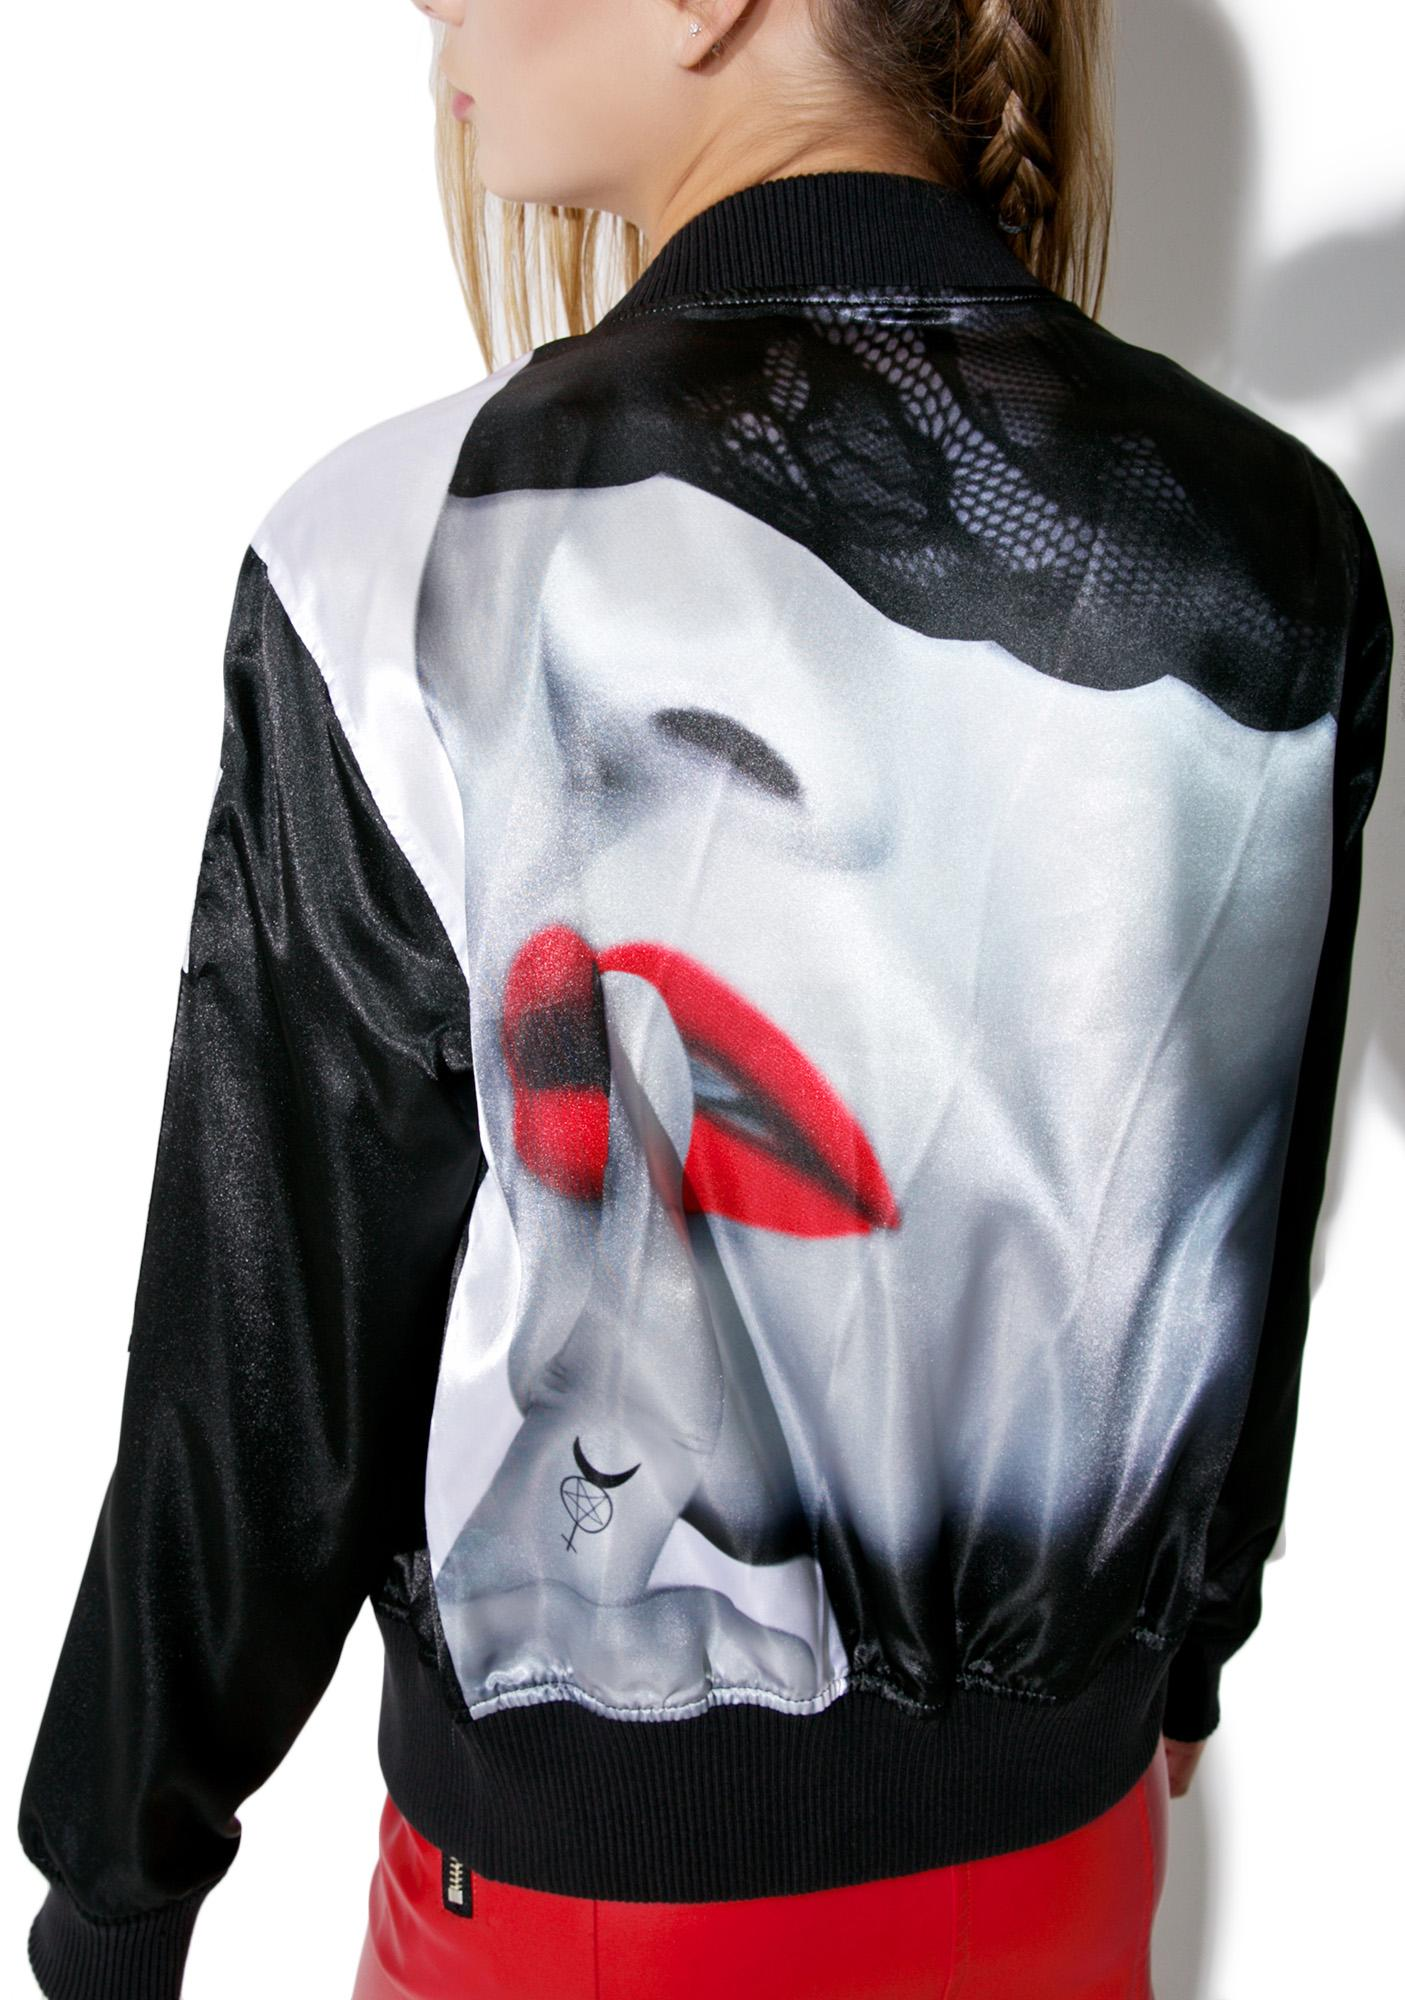 Black scale leather jacket